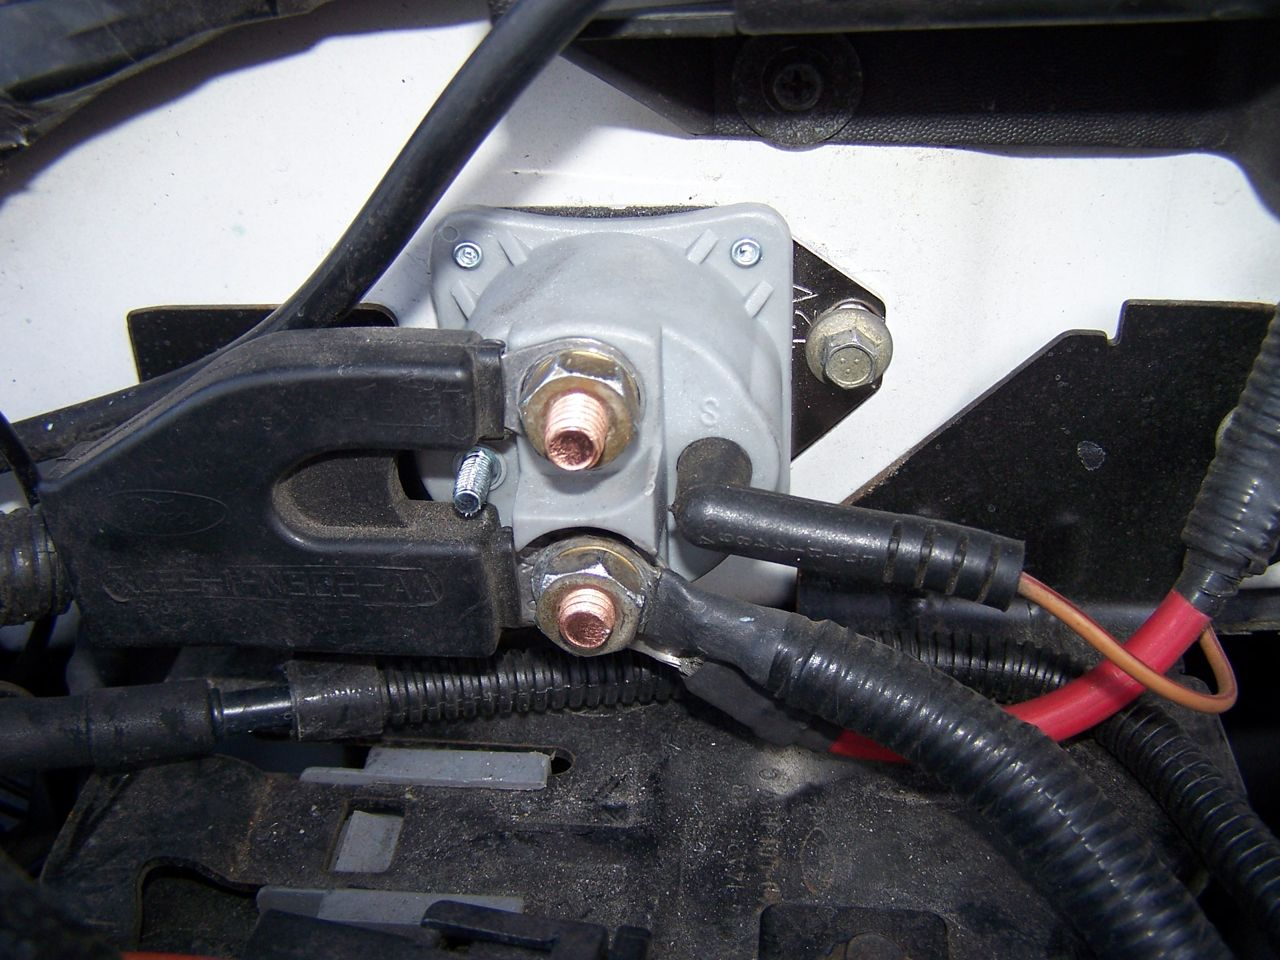 2009 12 03_193624_100_2918 i am looking for a diagram on the wiring of a 2001 ford expedition 2001 ford f150 starter solenoid wiring diagram at creativeand.co